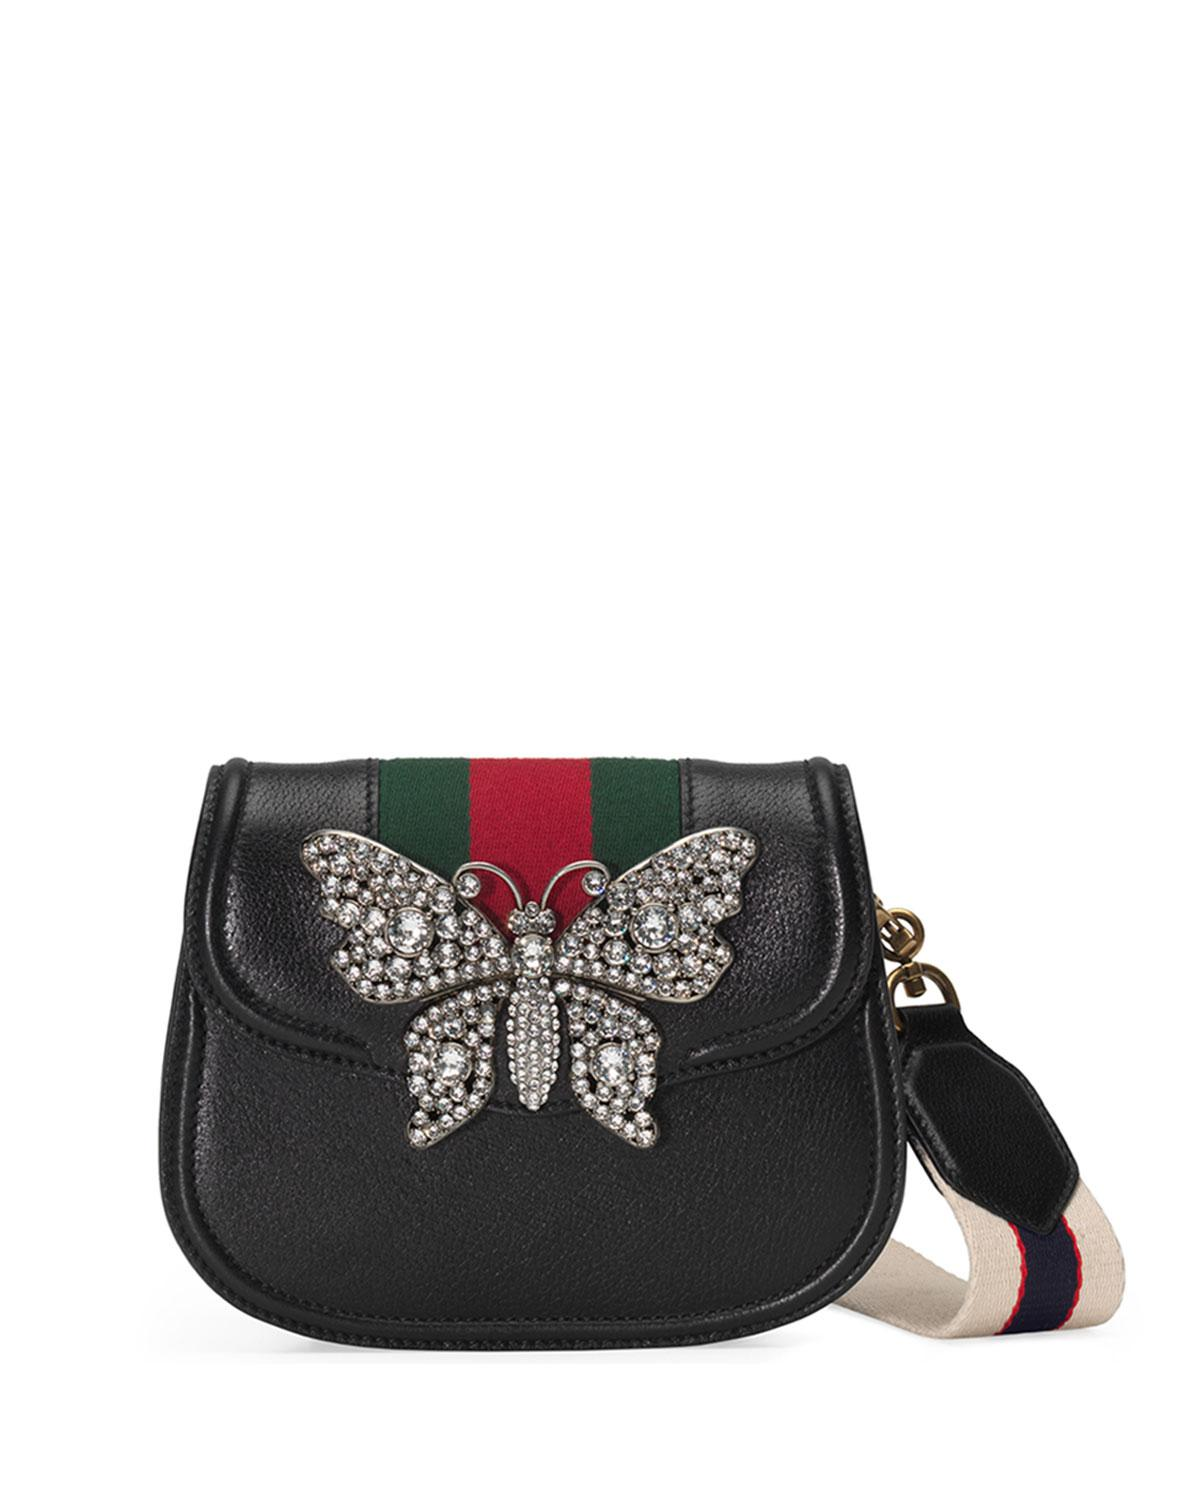 bb302f6e91e5d Lyst - Gucci Linea Totem Small Leather Shoulder Bag With Crystal ...